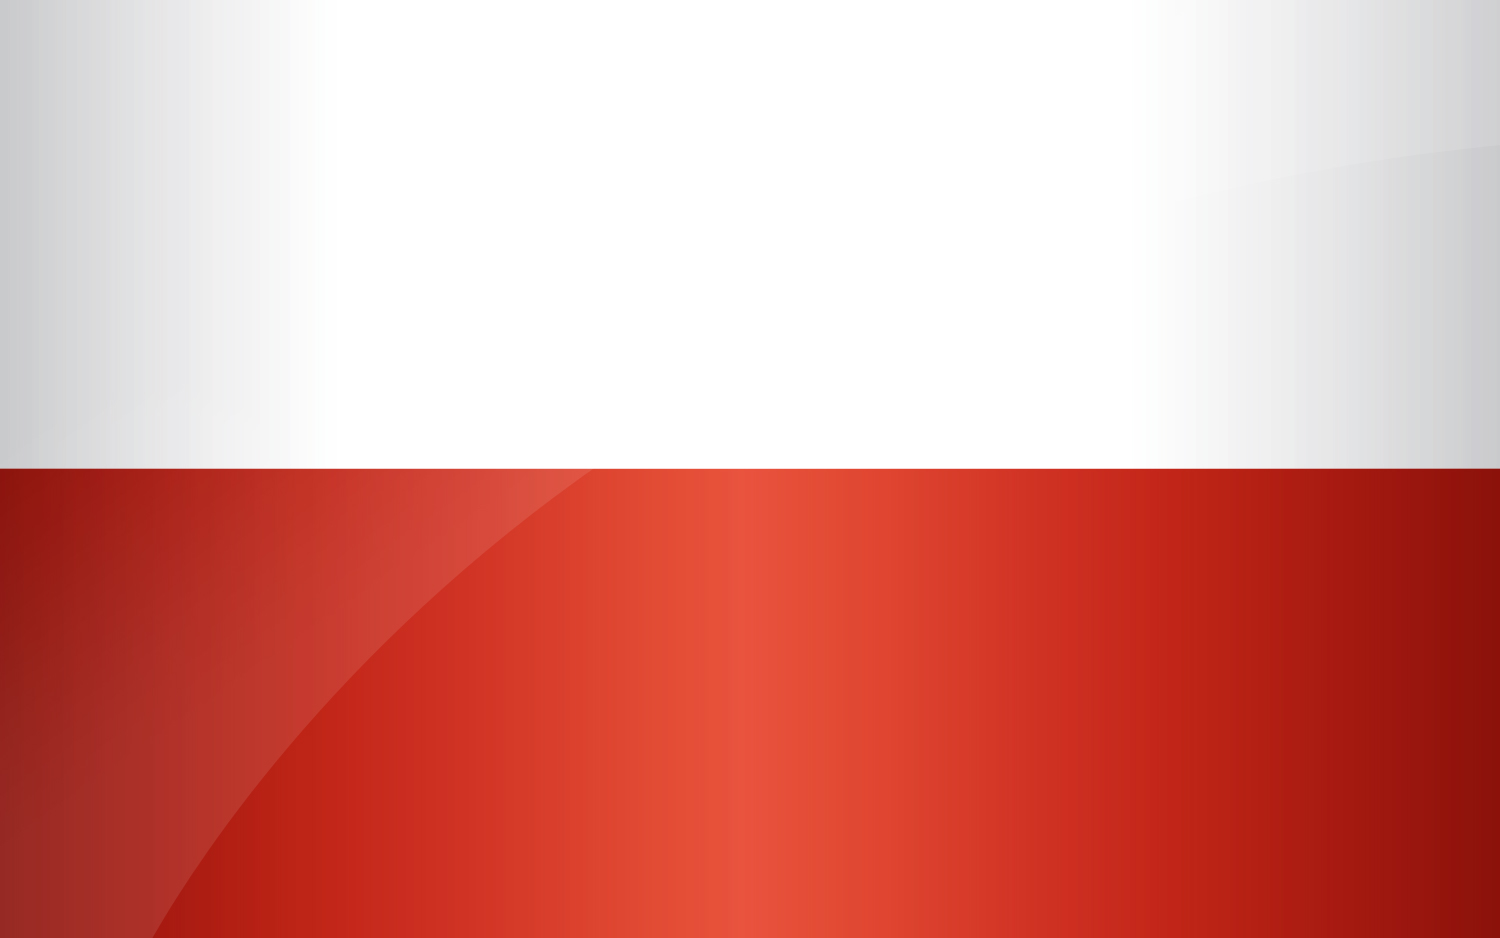 http://www.all-flags-world.com/country-flag/Poland/flag-poland-XL.jpg?923